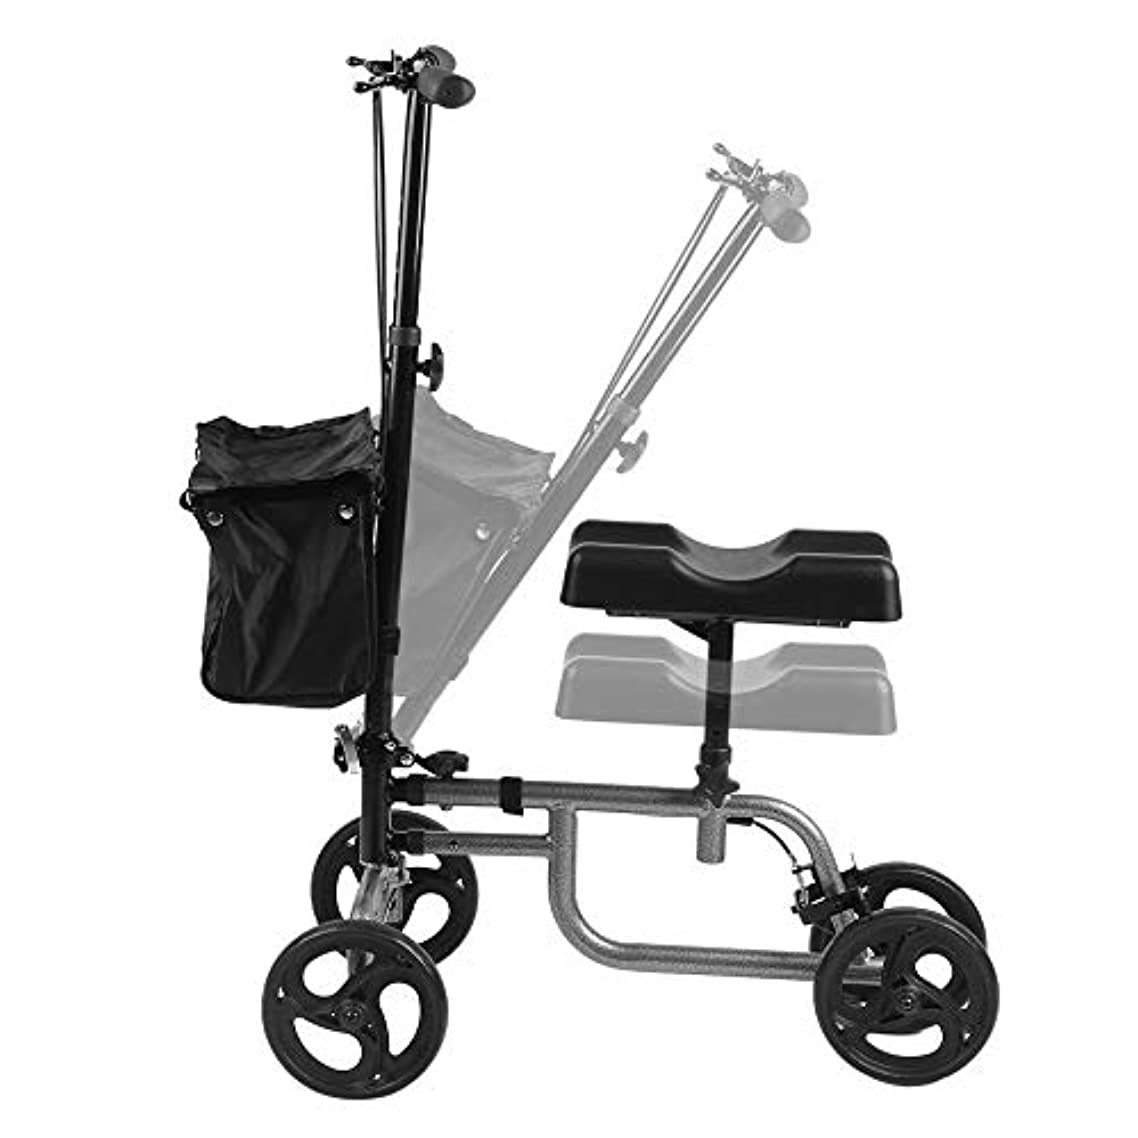 Simoner Foldable Steerable Knee Walker Scooter, Four Wheel Balance Quadricycle Turning Brake Basket Medical Drive, Black